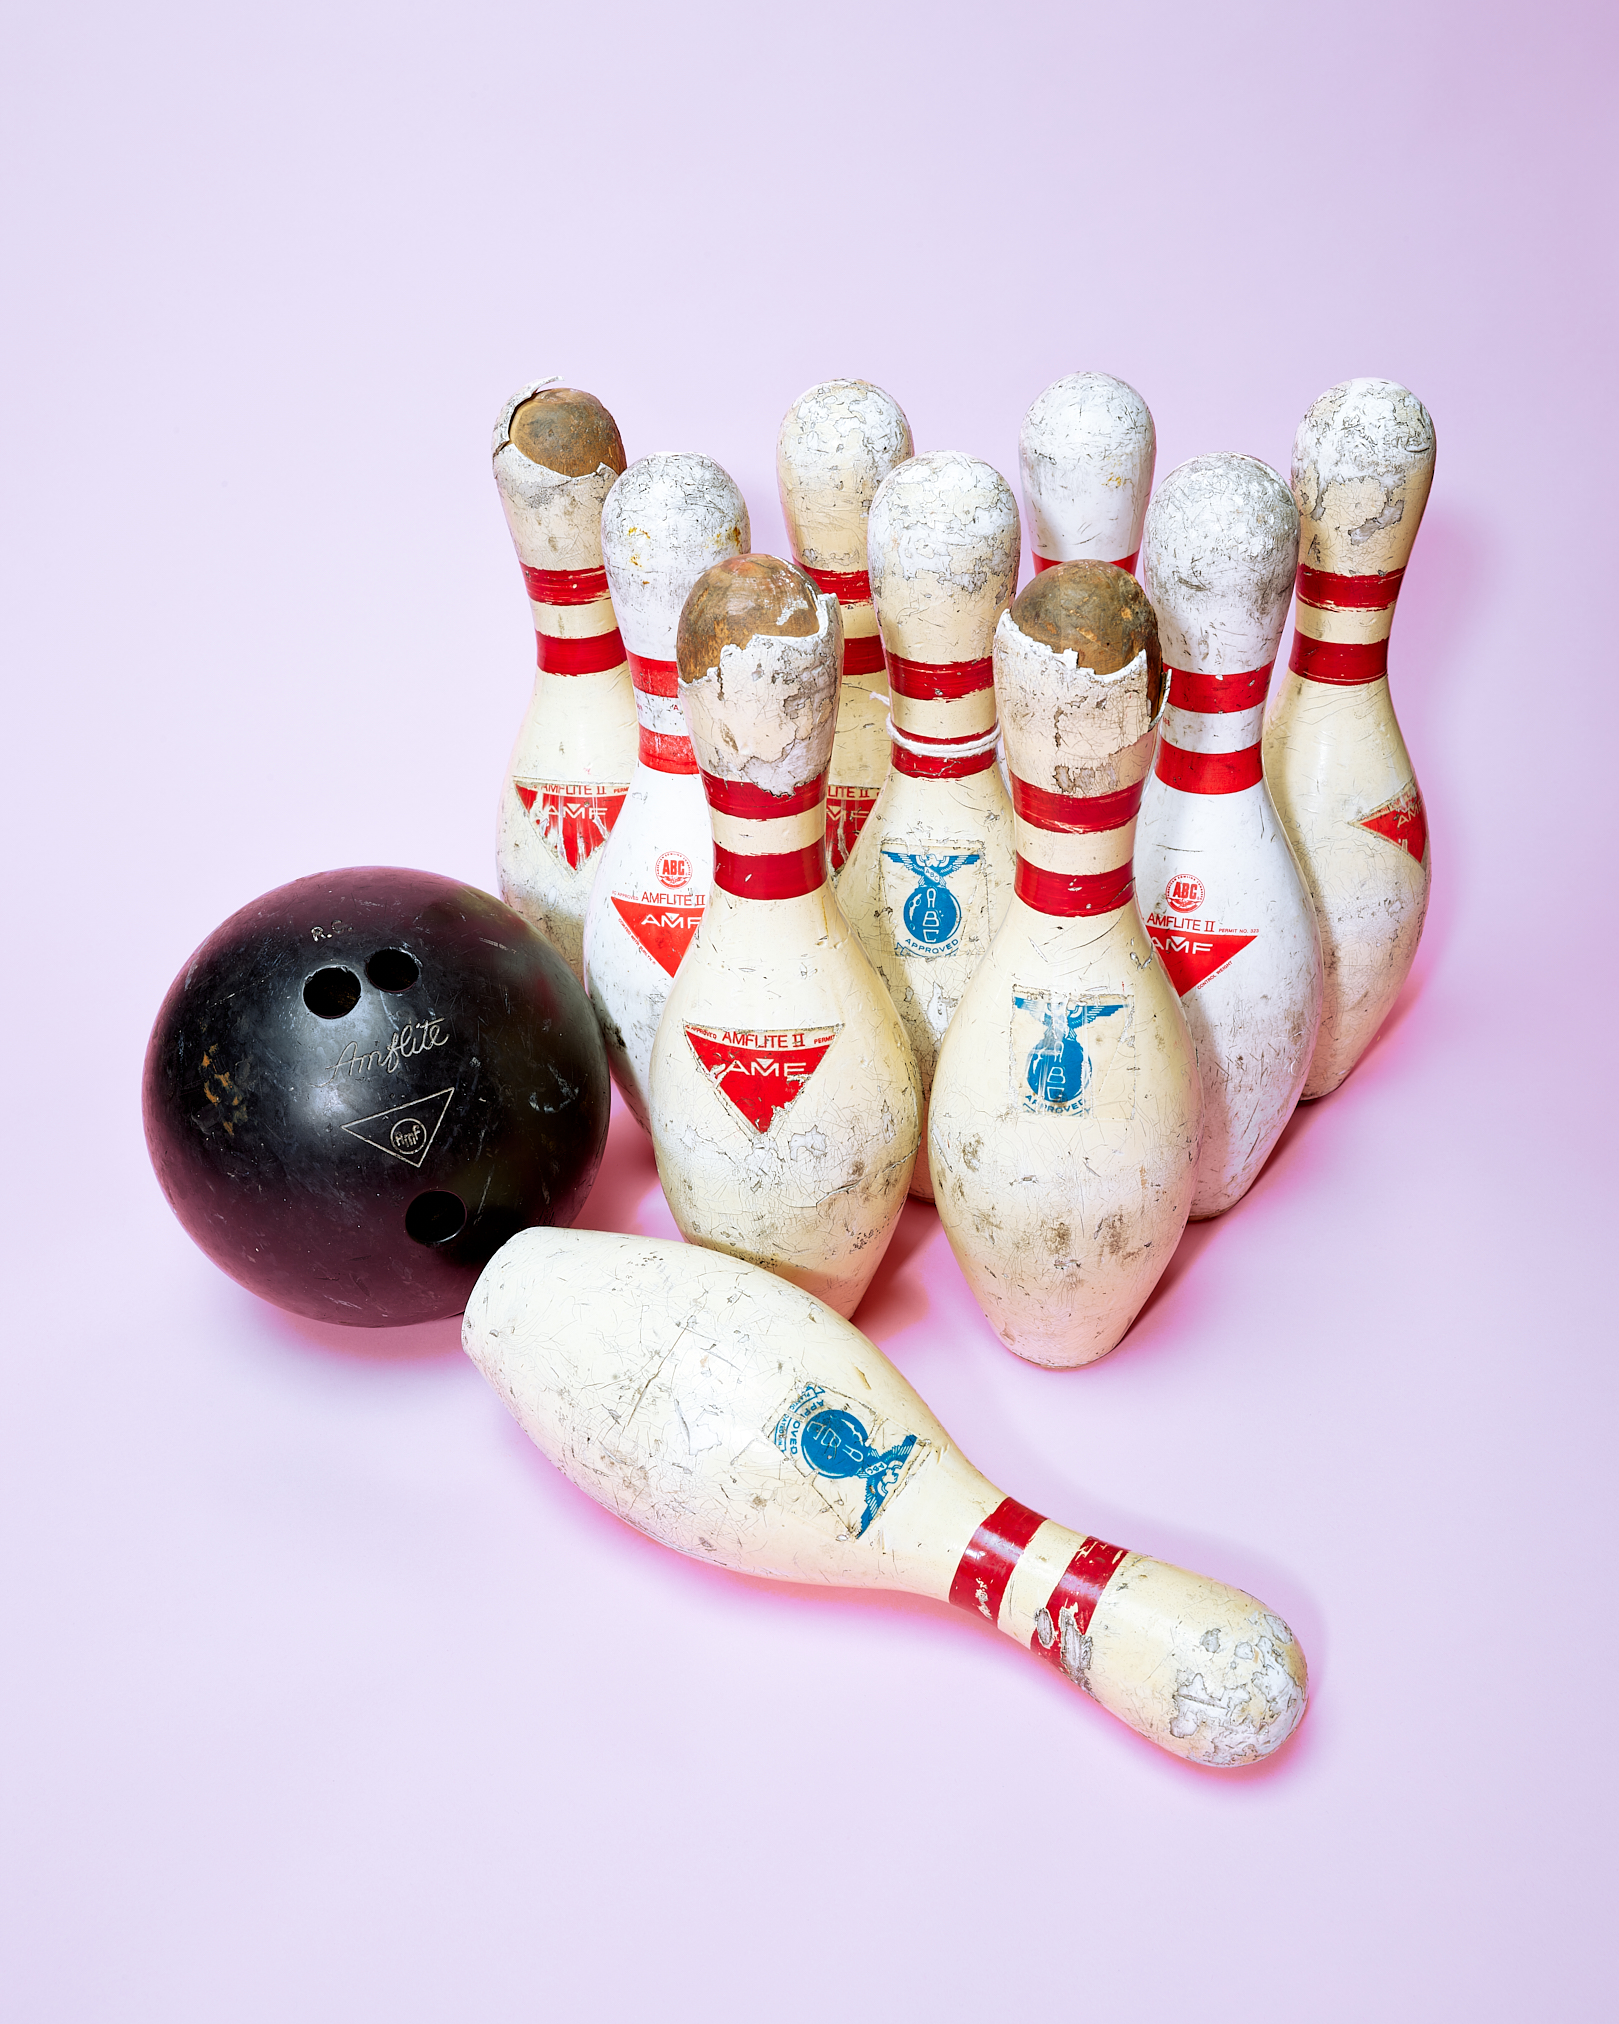 Bowling Pins by Peter Adams.